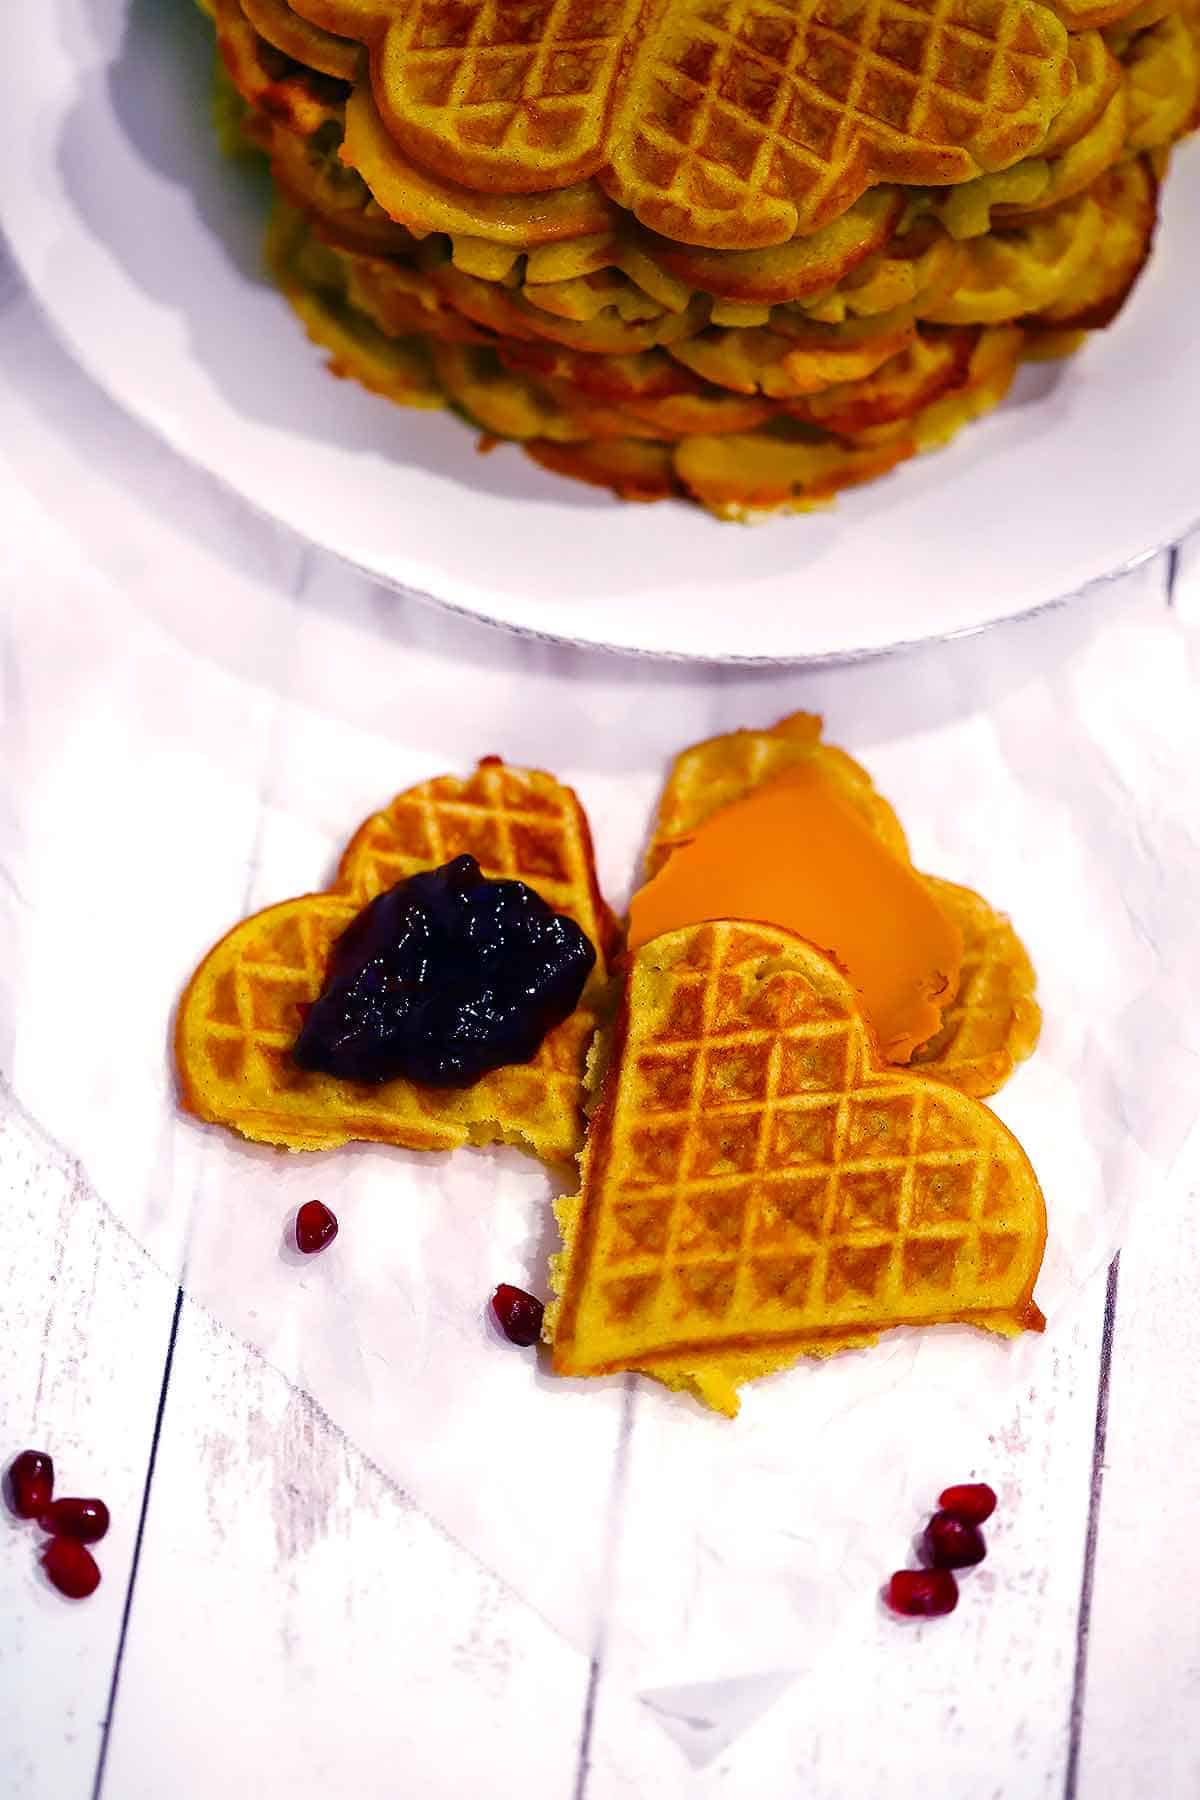 Three heart shaped Norwegian waffles topped with lingonberry jam and brown gjetost cheese.